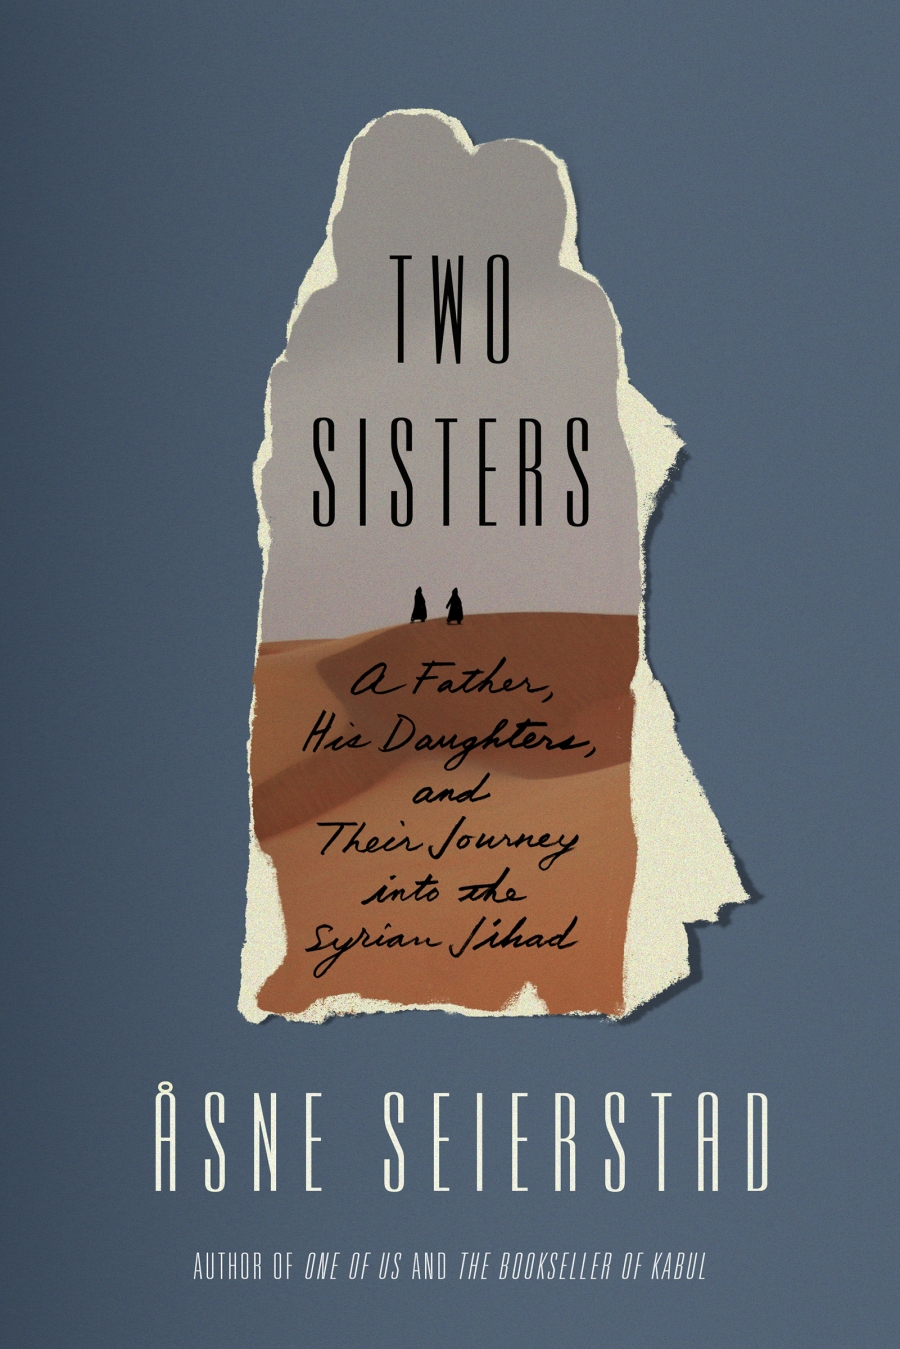 Two Sisters.  A Father, His Daughters, and Their Journey into the Syrian Jihad